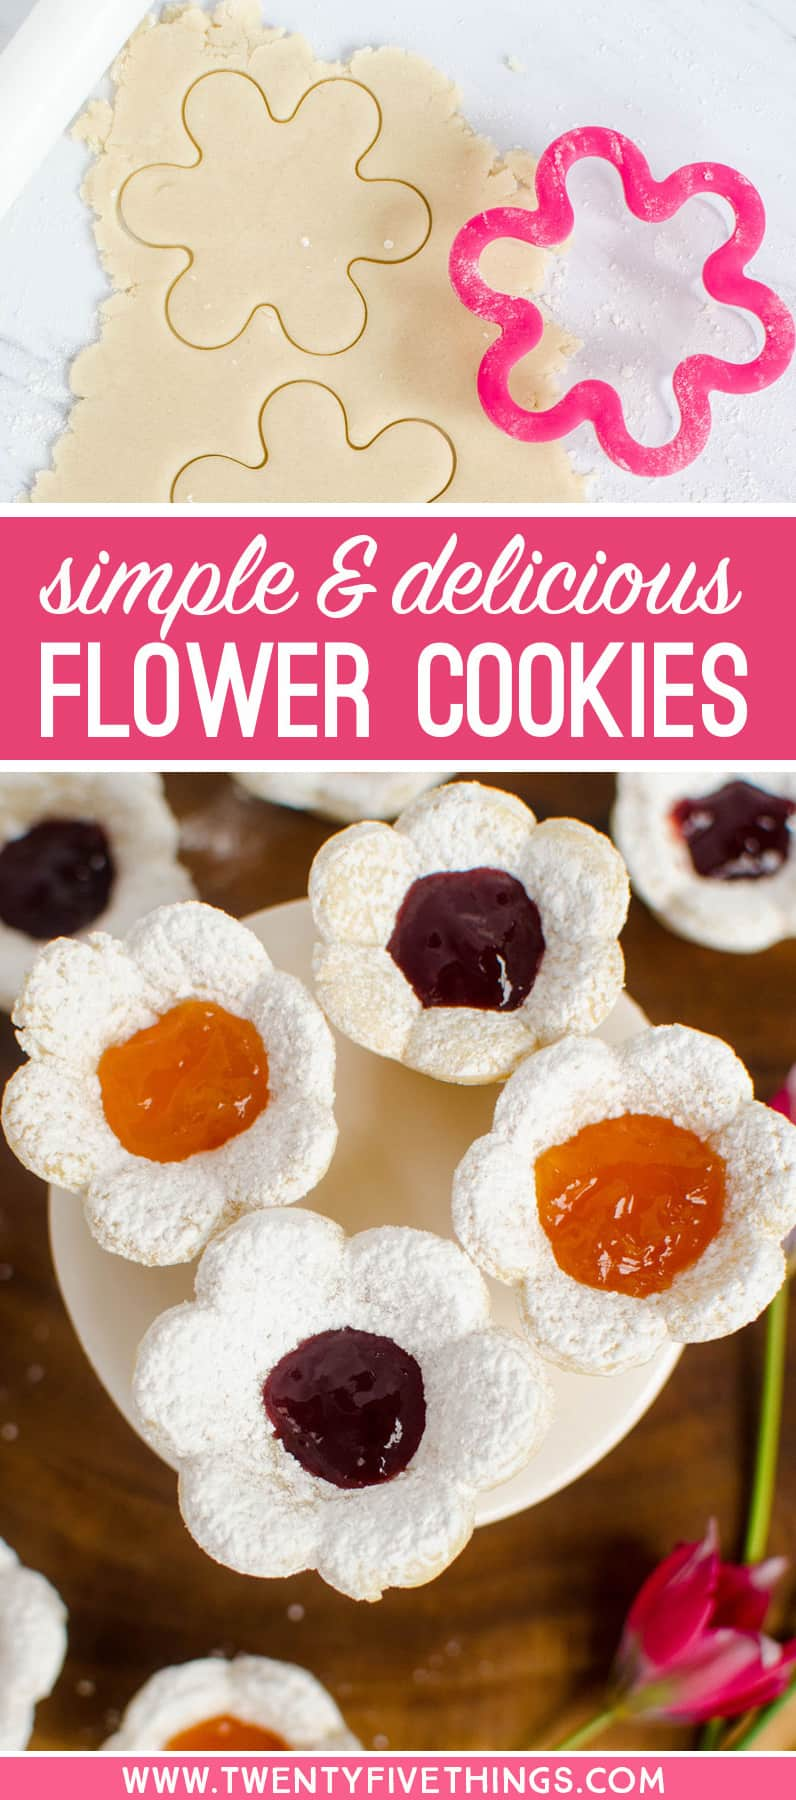 Easy flower cookies for Mother's Day. If you can use a cookie cutter, you can make these easy flower cookies. Perfect cookies for a Mother's Day brunch or tea.